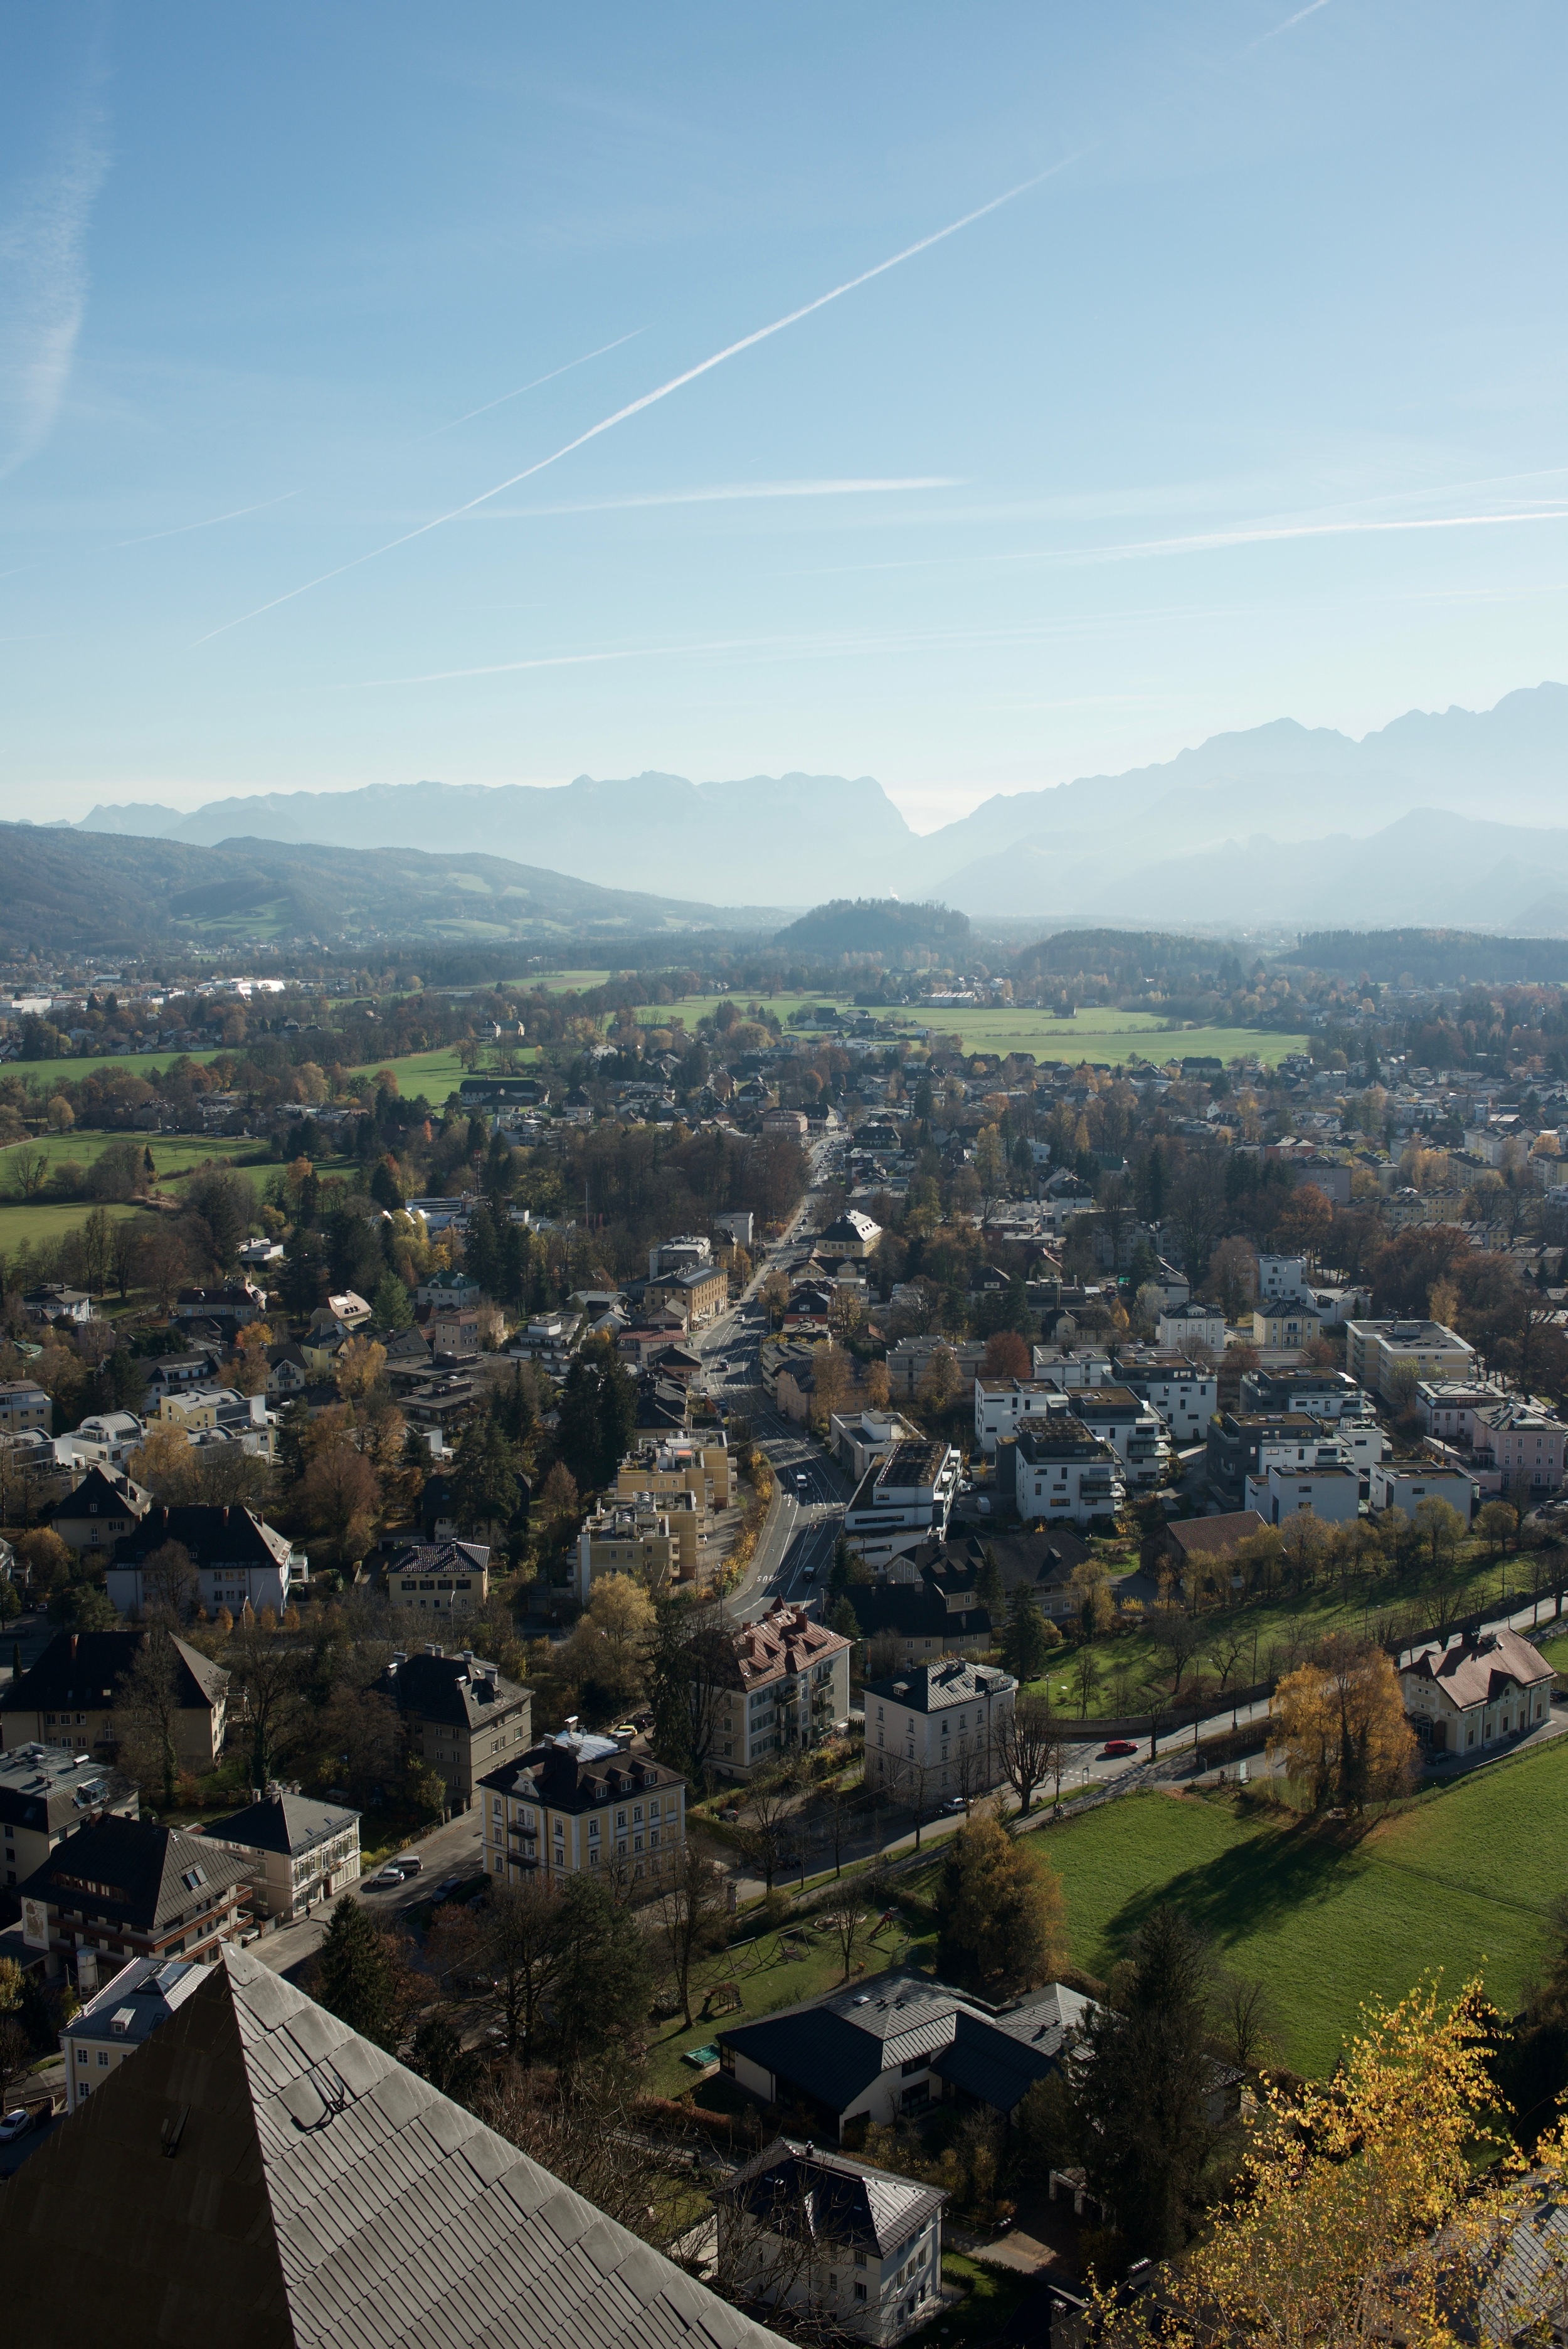 The view from Salzburg fortress.